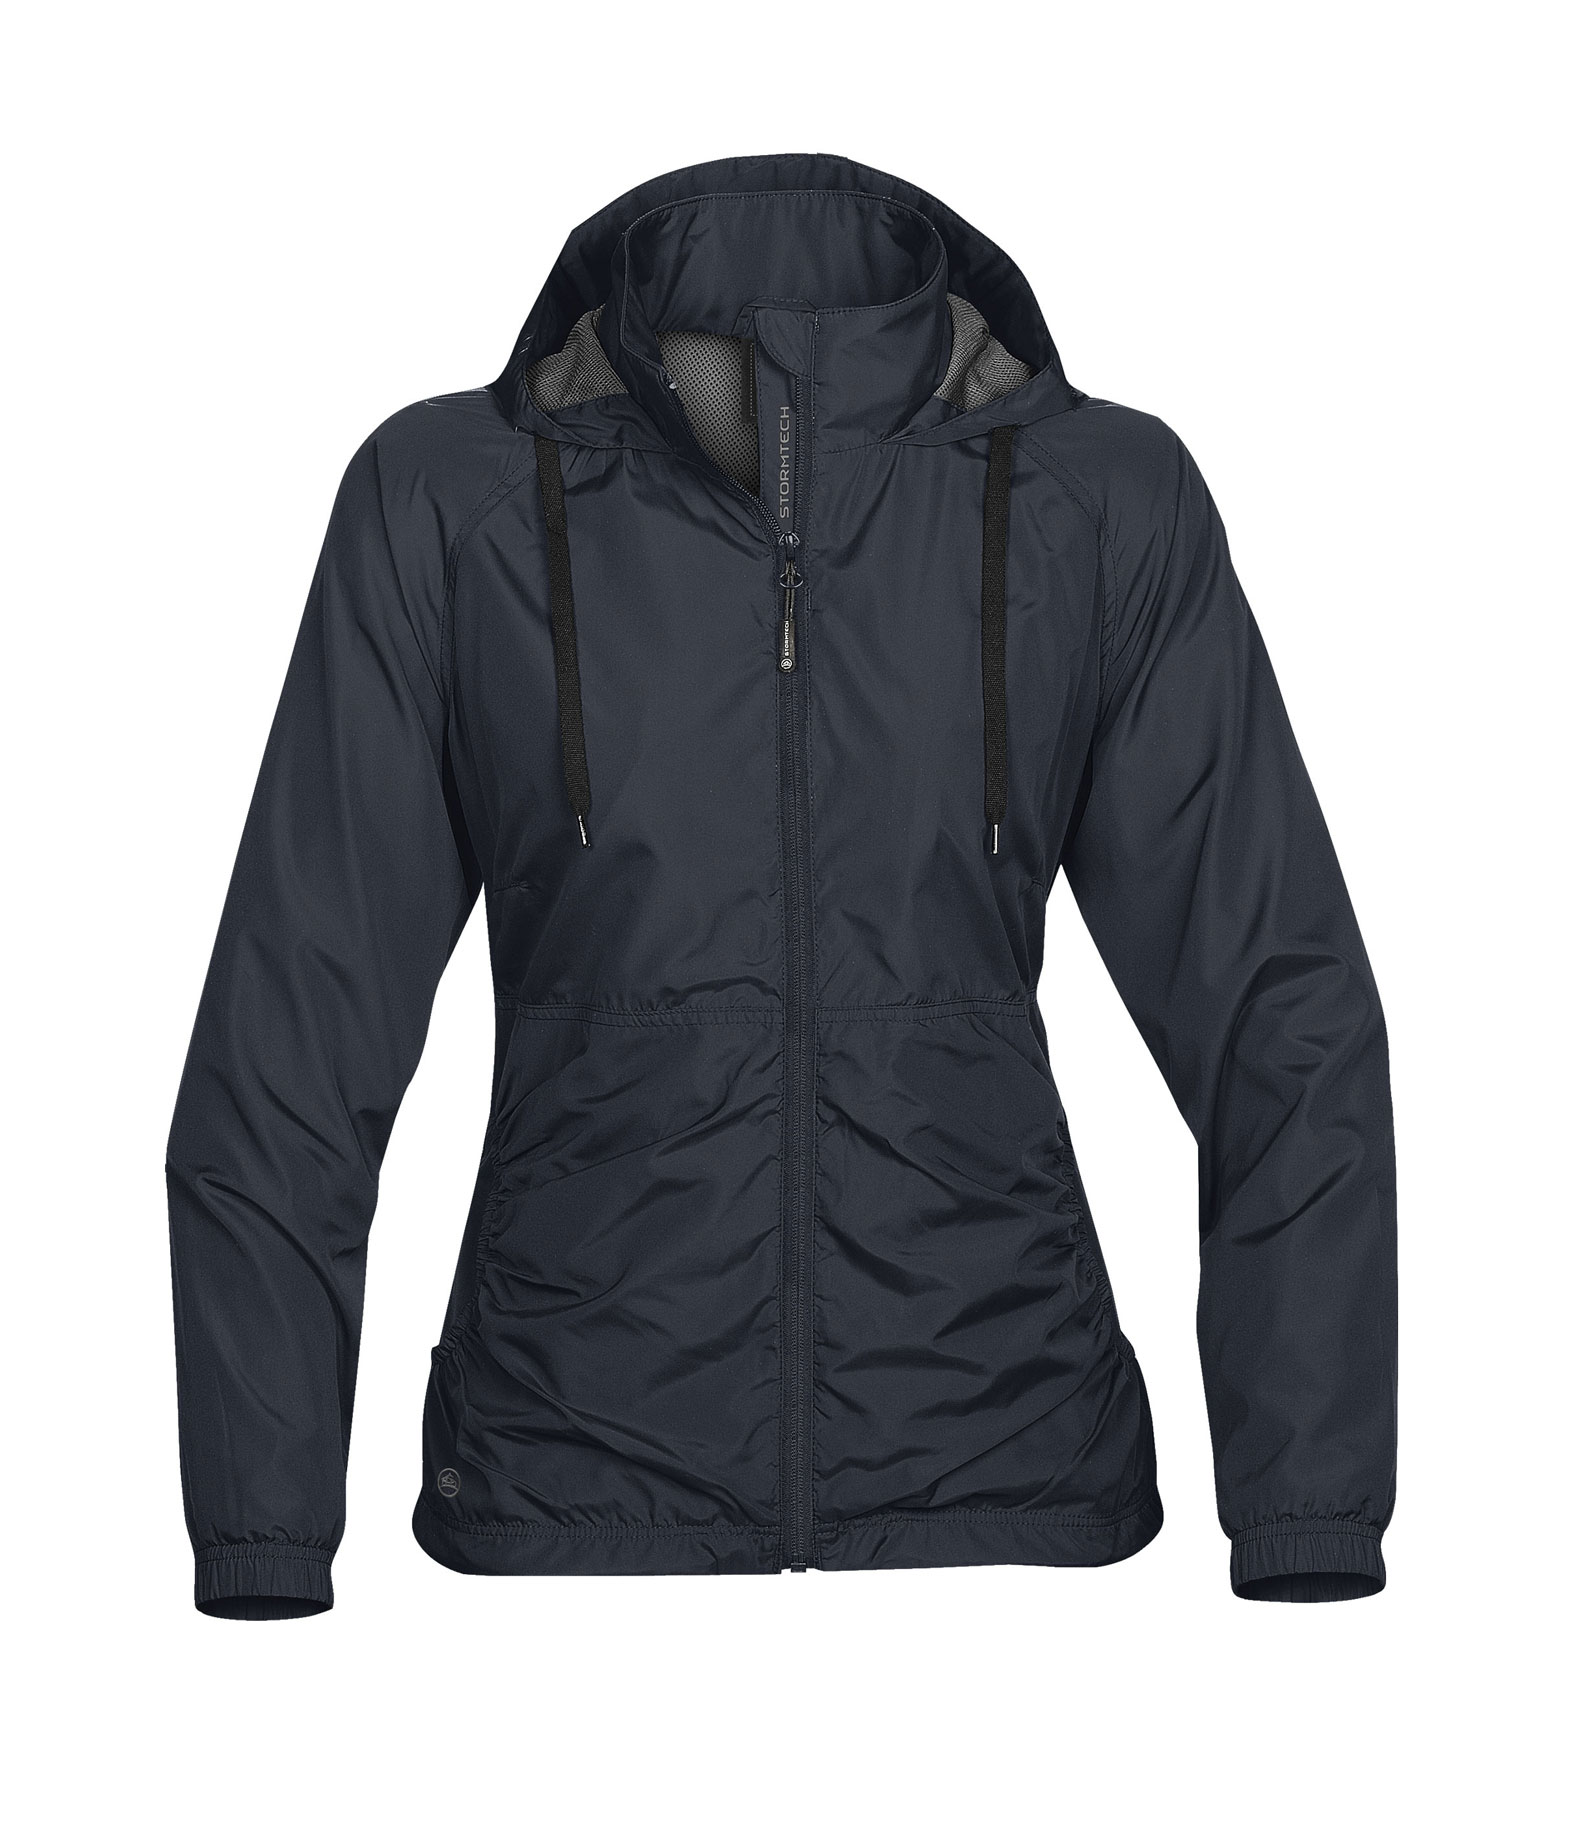 Stormtech Womens Tritium Shell Jacket